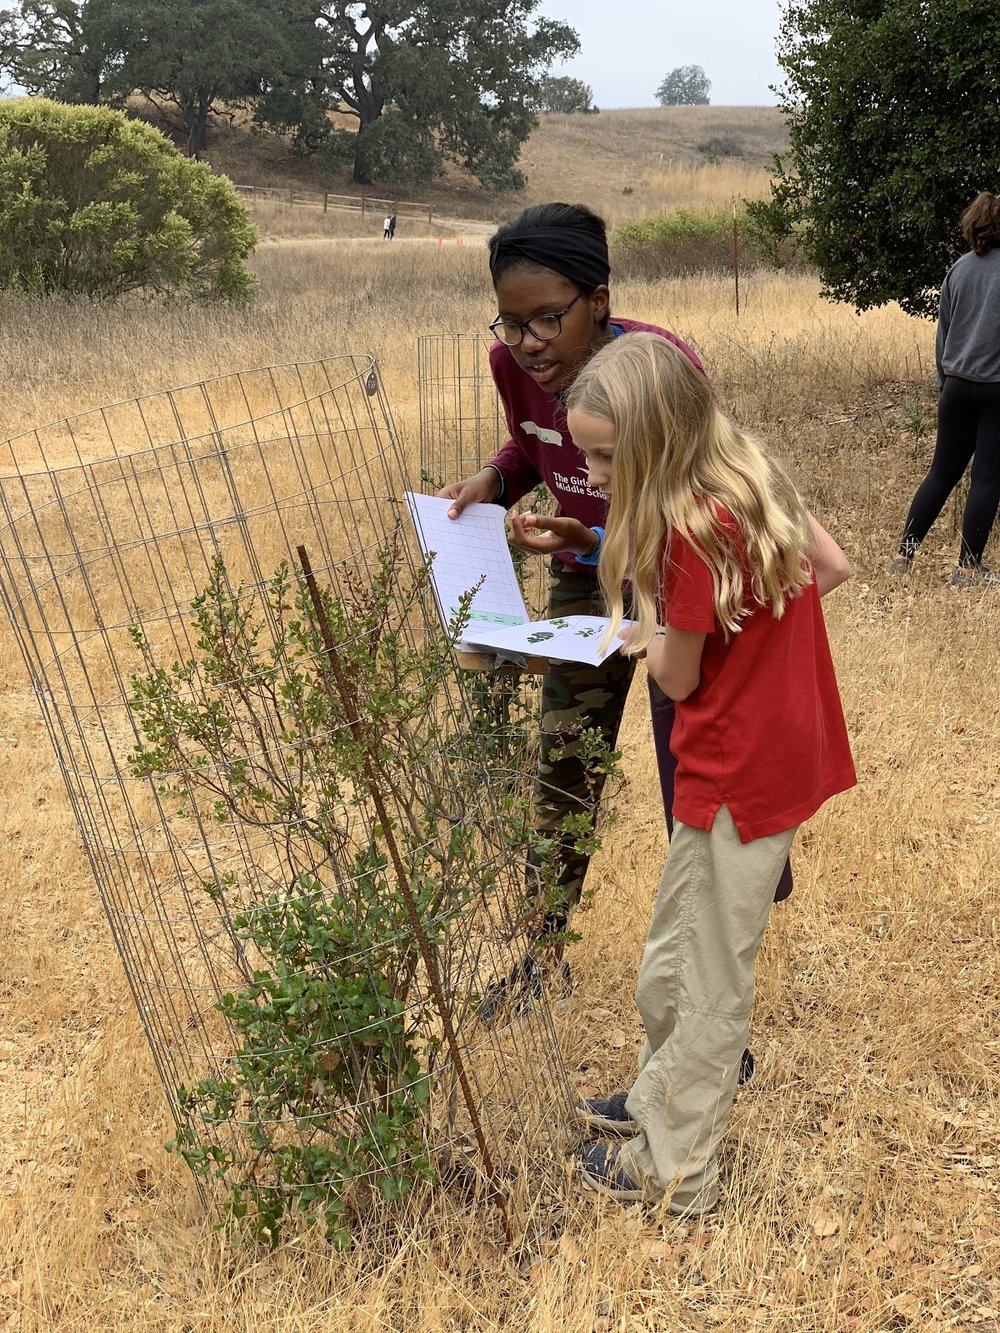 Girls Middle School students monitor oak trees at Arastradero Preserve - recording species, height, and signs of herbivory.